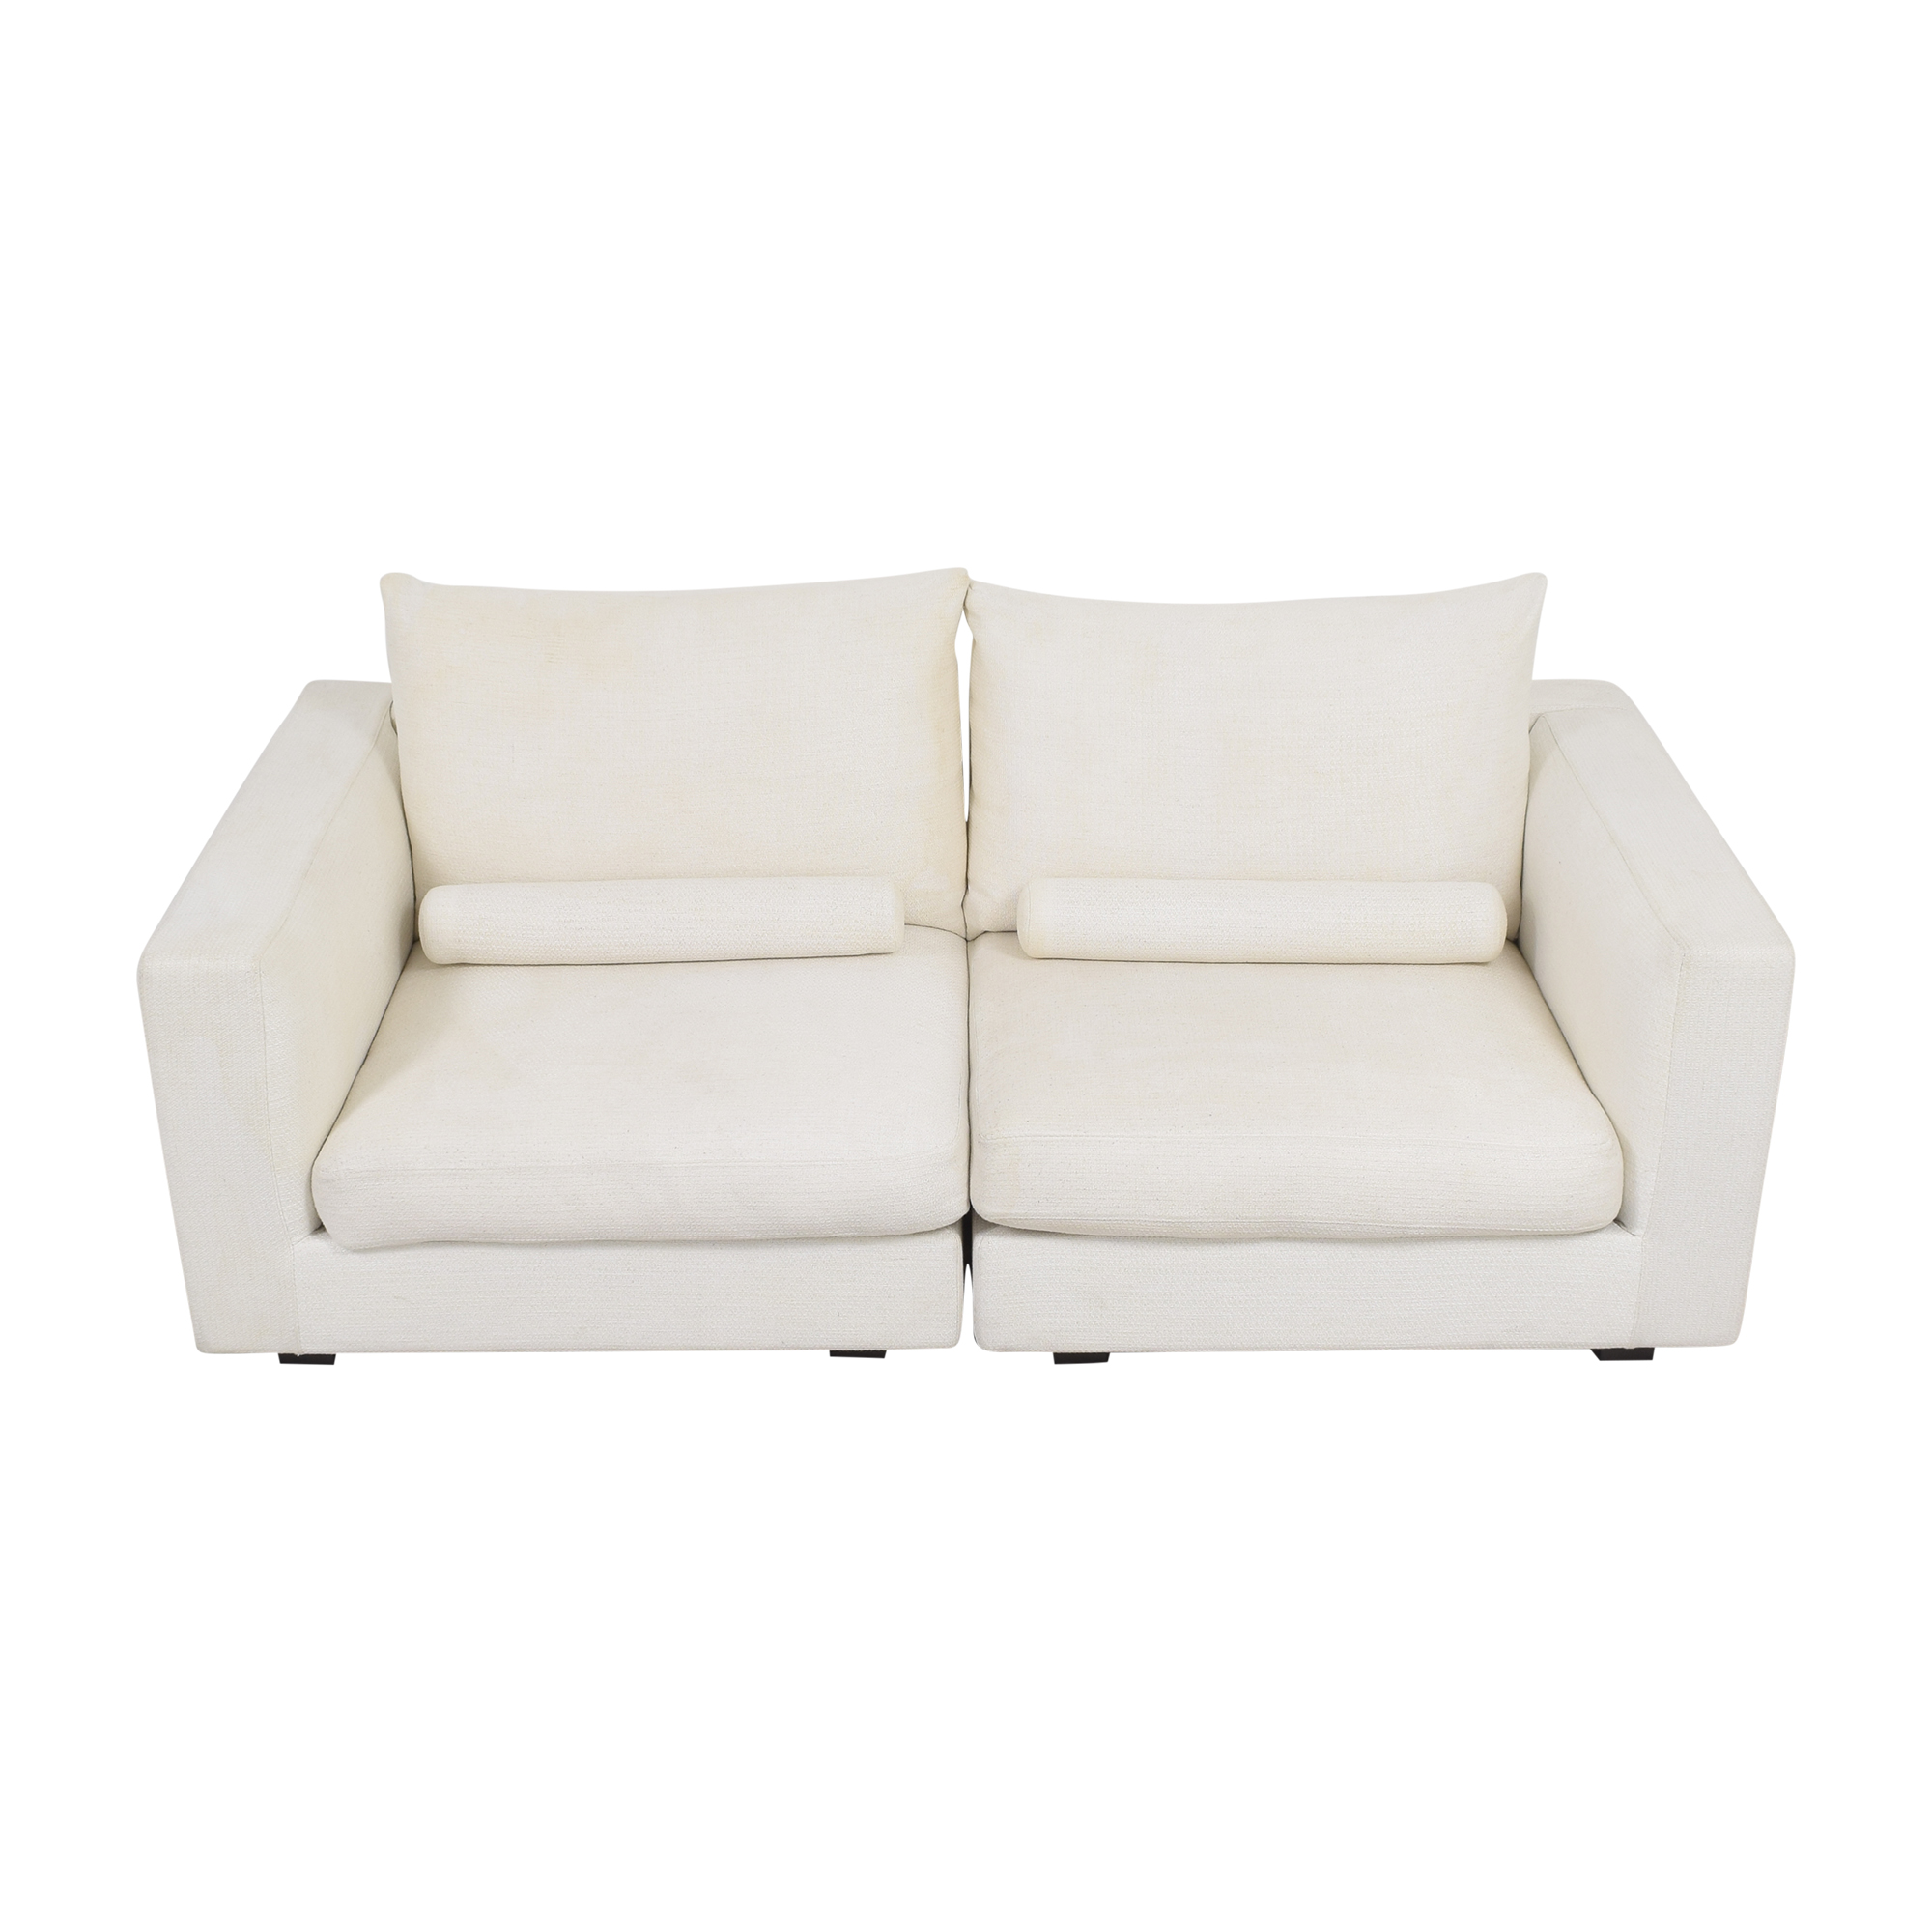 West Elm West Elm Hampton Two Piece Modular Sofa white